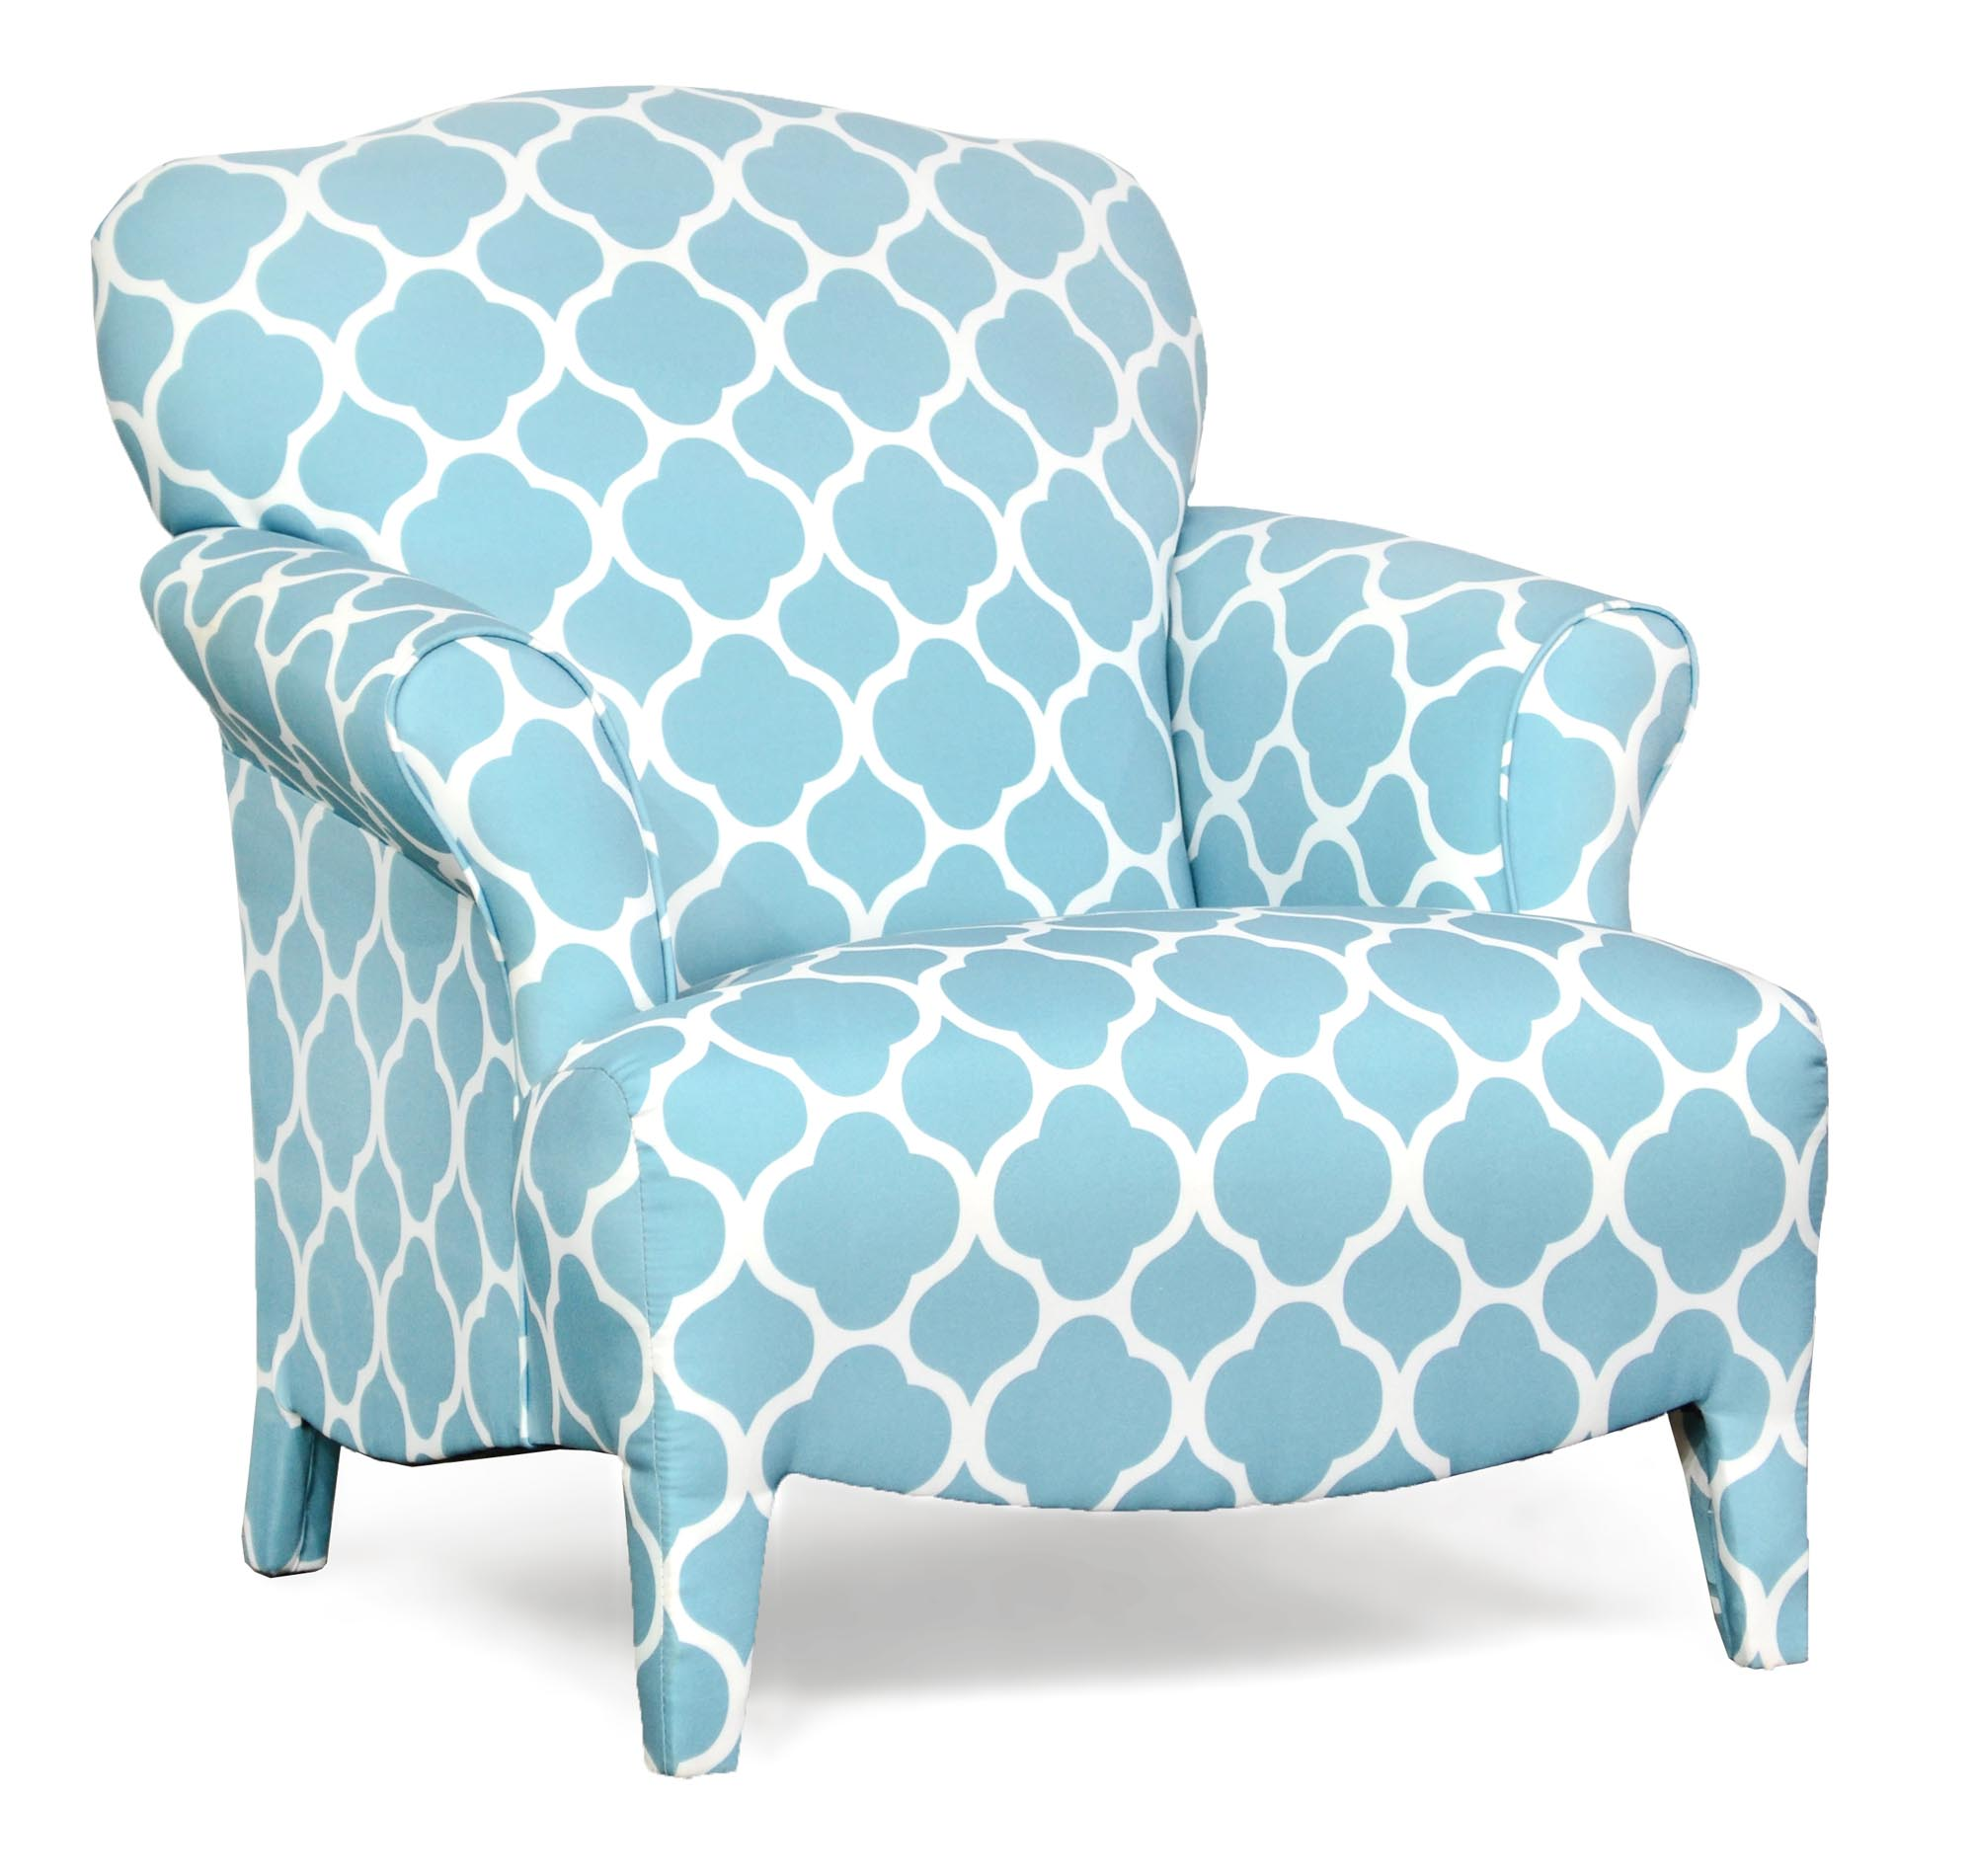 100 Olivia Accent Chair: ~ Choice of Colors $239.95